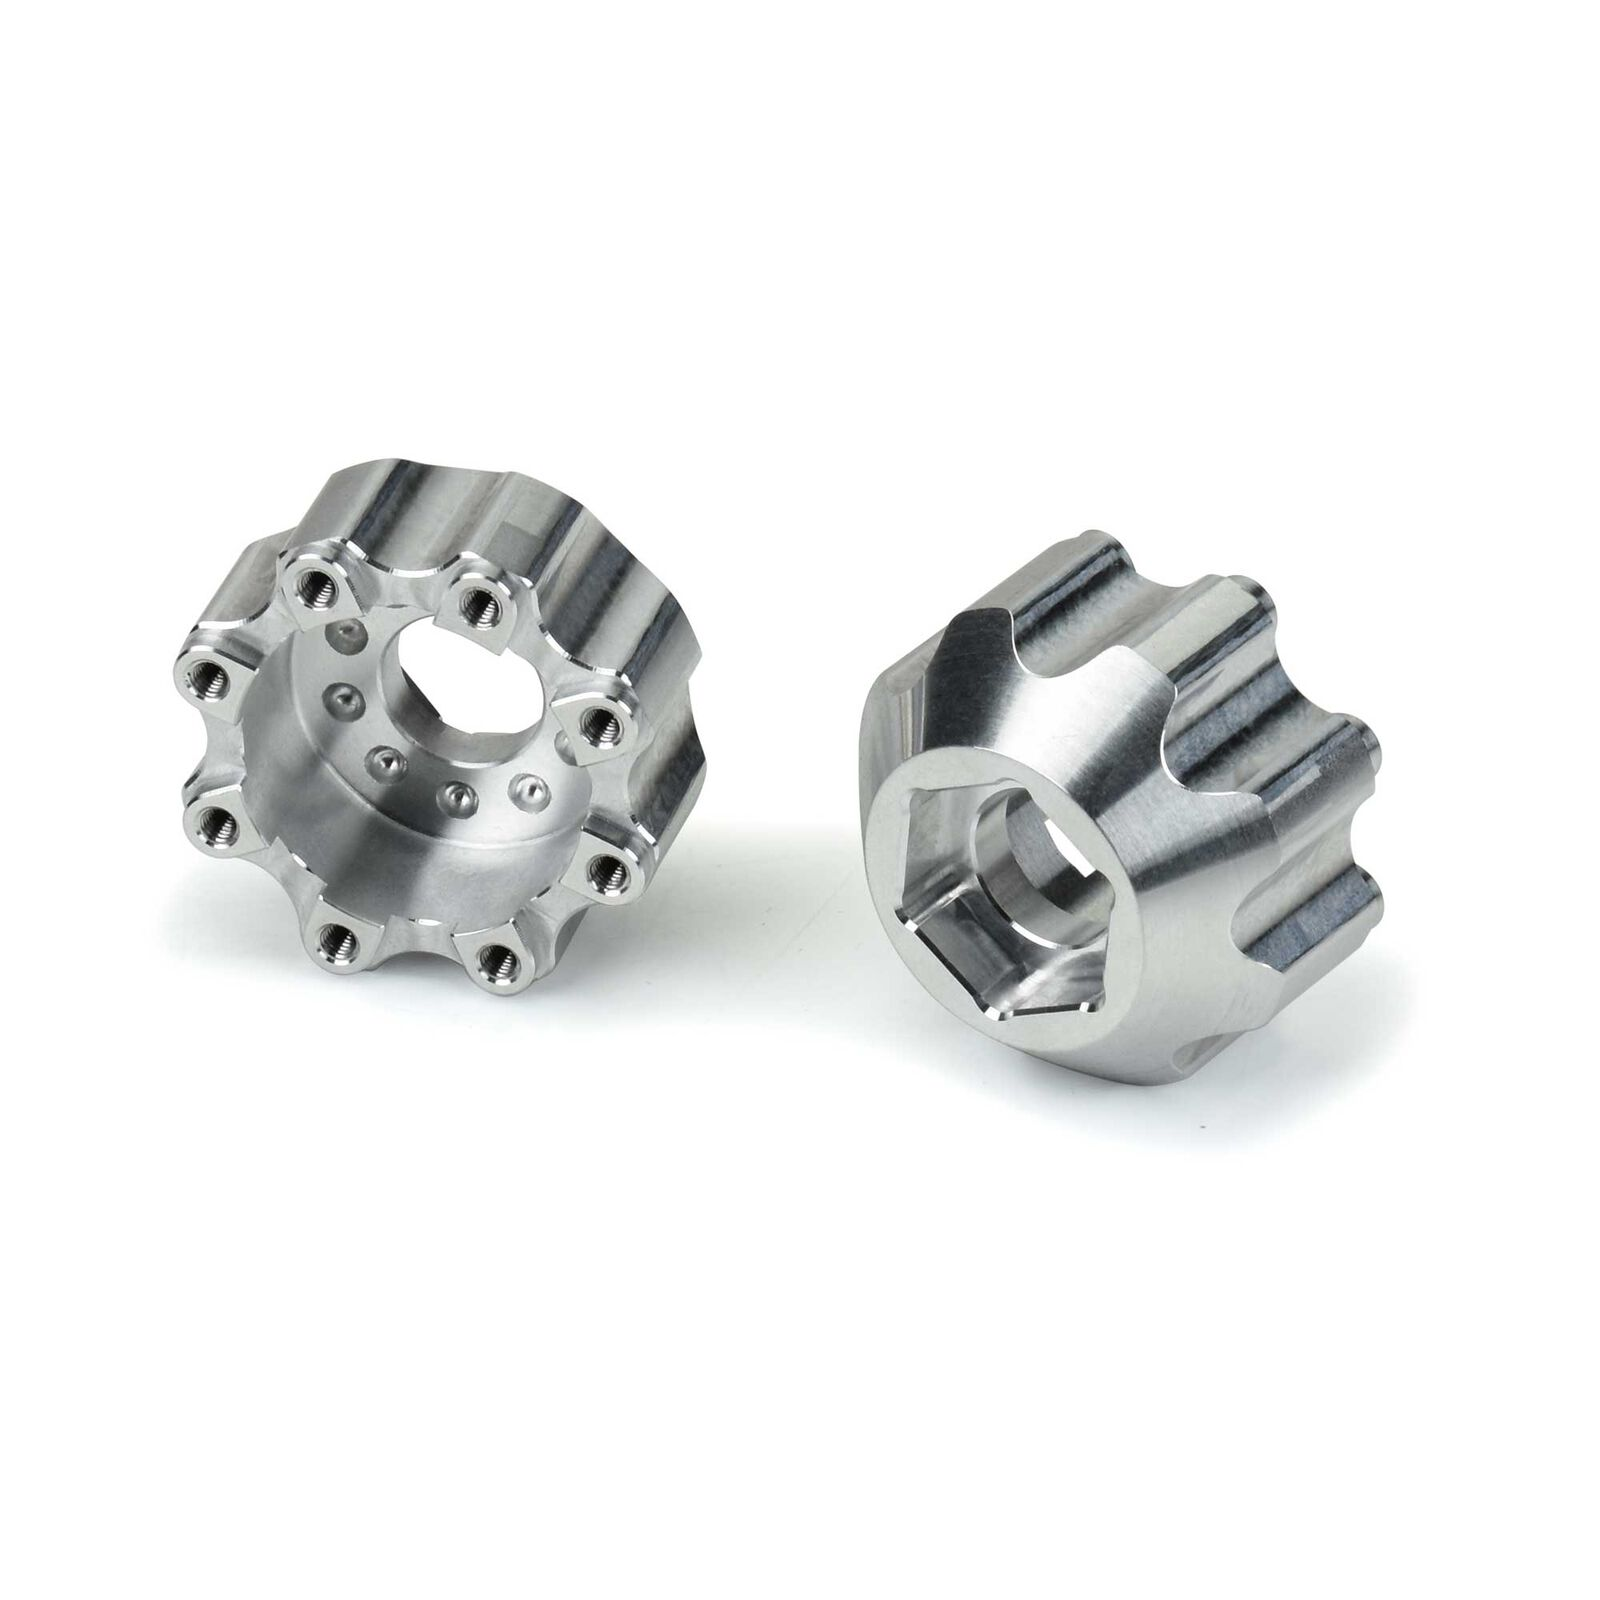 """1/8 8x32 to 17mm 1/2"""" Offset Aluminum Hex Adapters"""